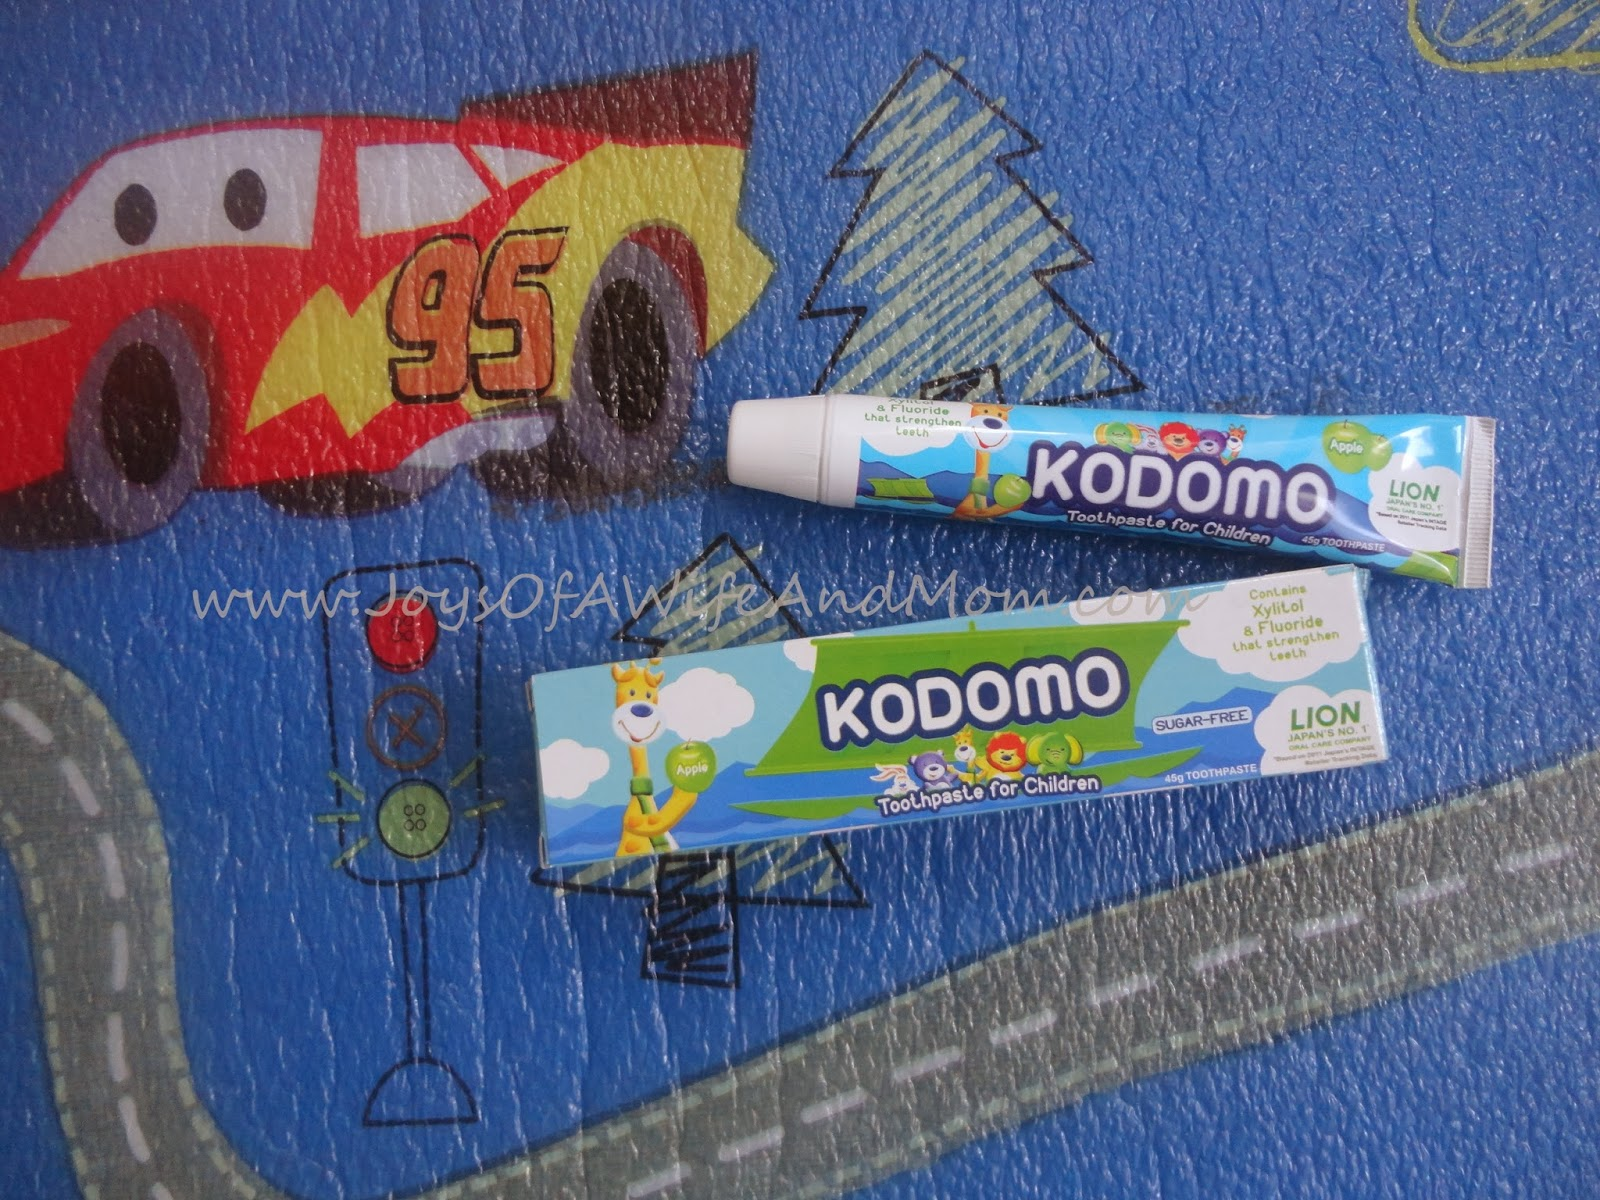 Kodomo Toothpaste for Children